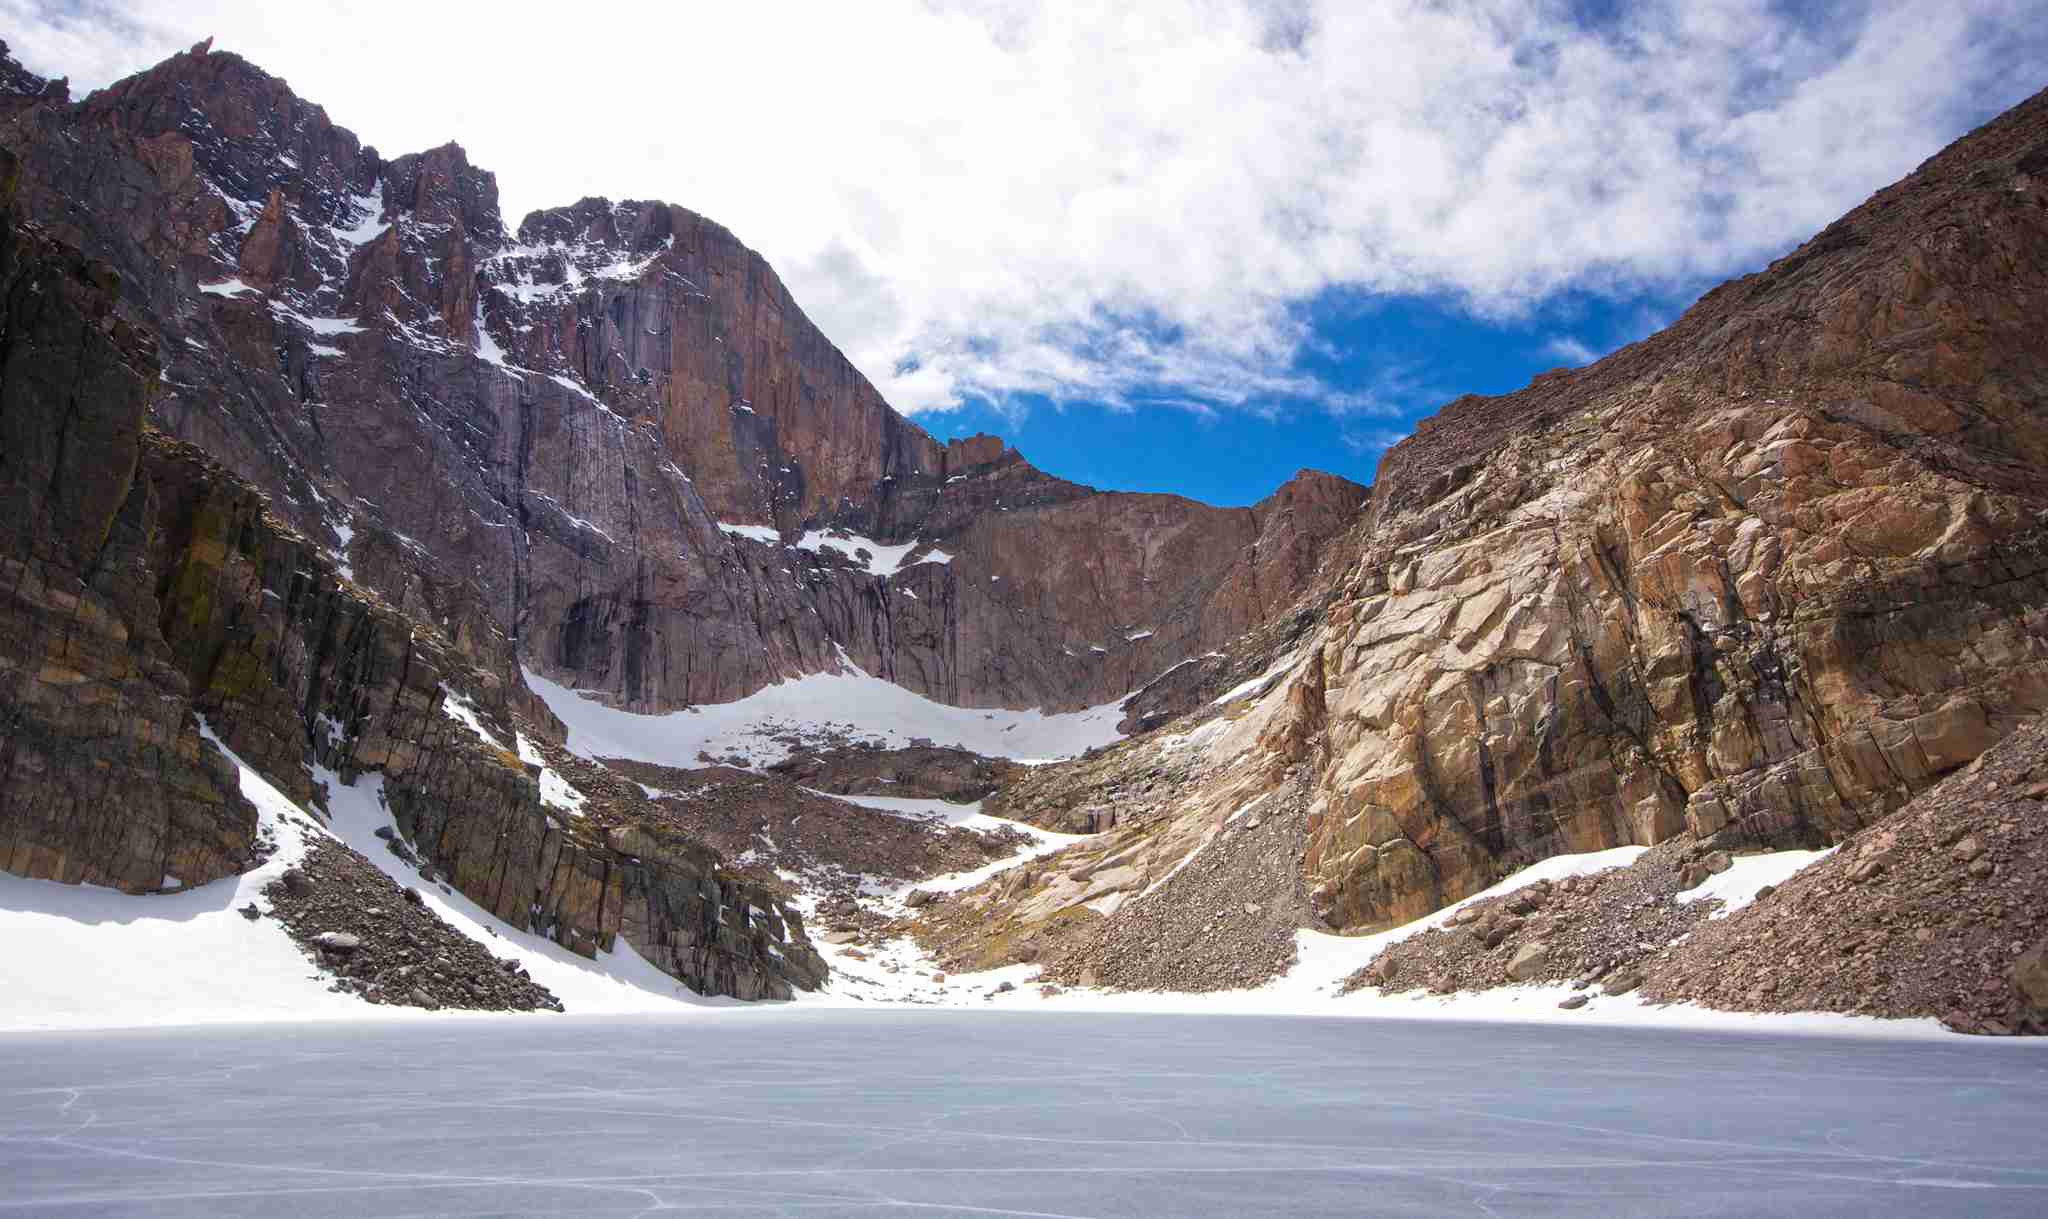 Chasm Lake and Longs Peak (Rocky Mountain National Park)